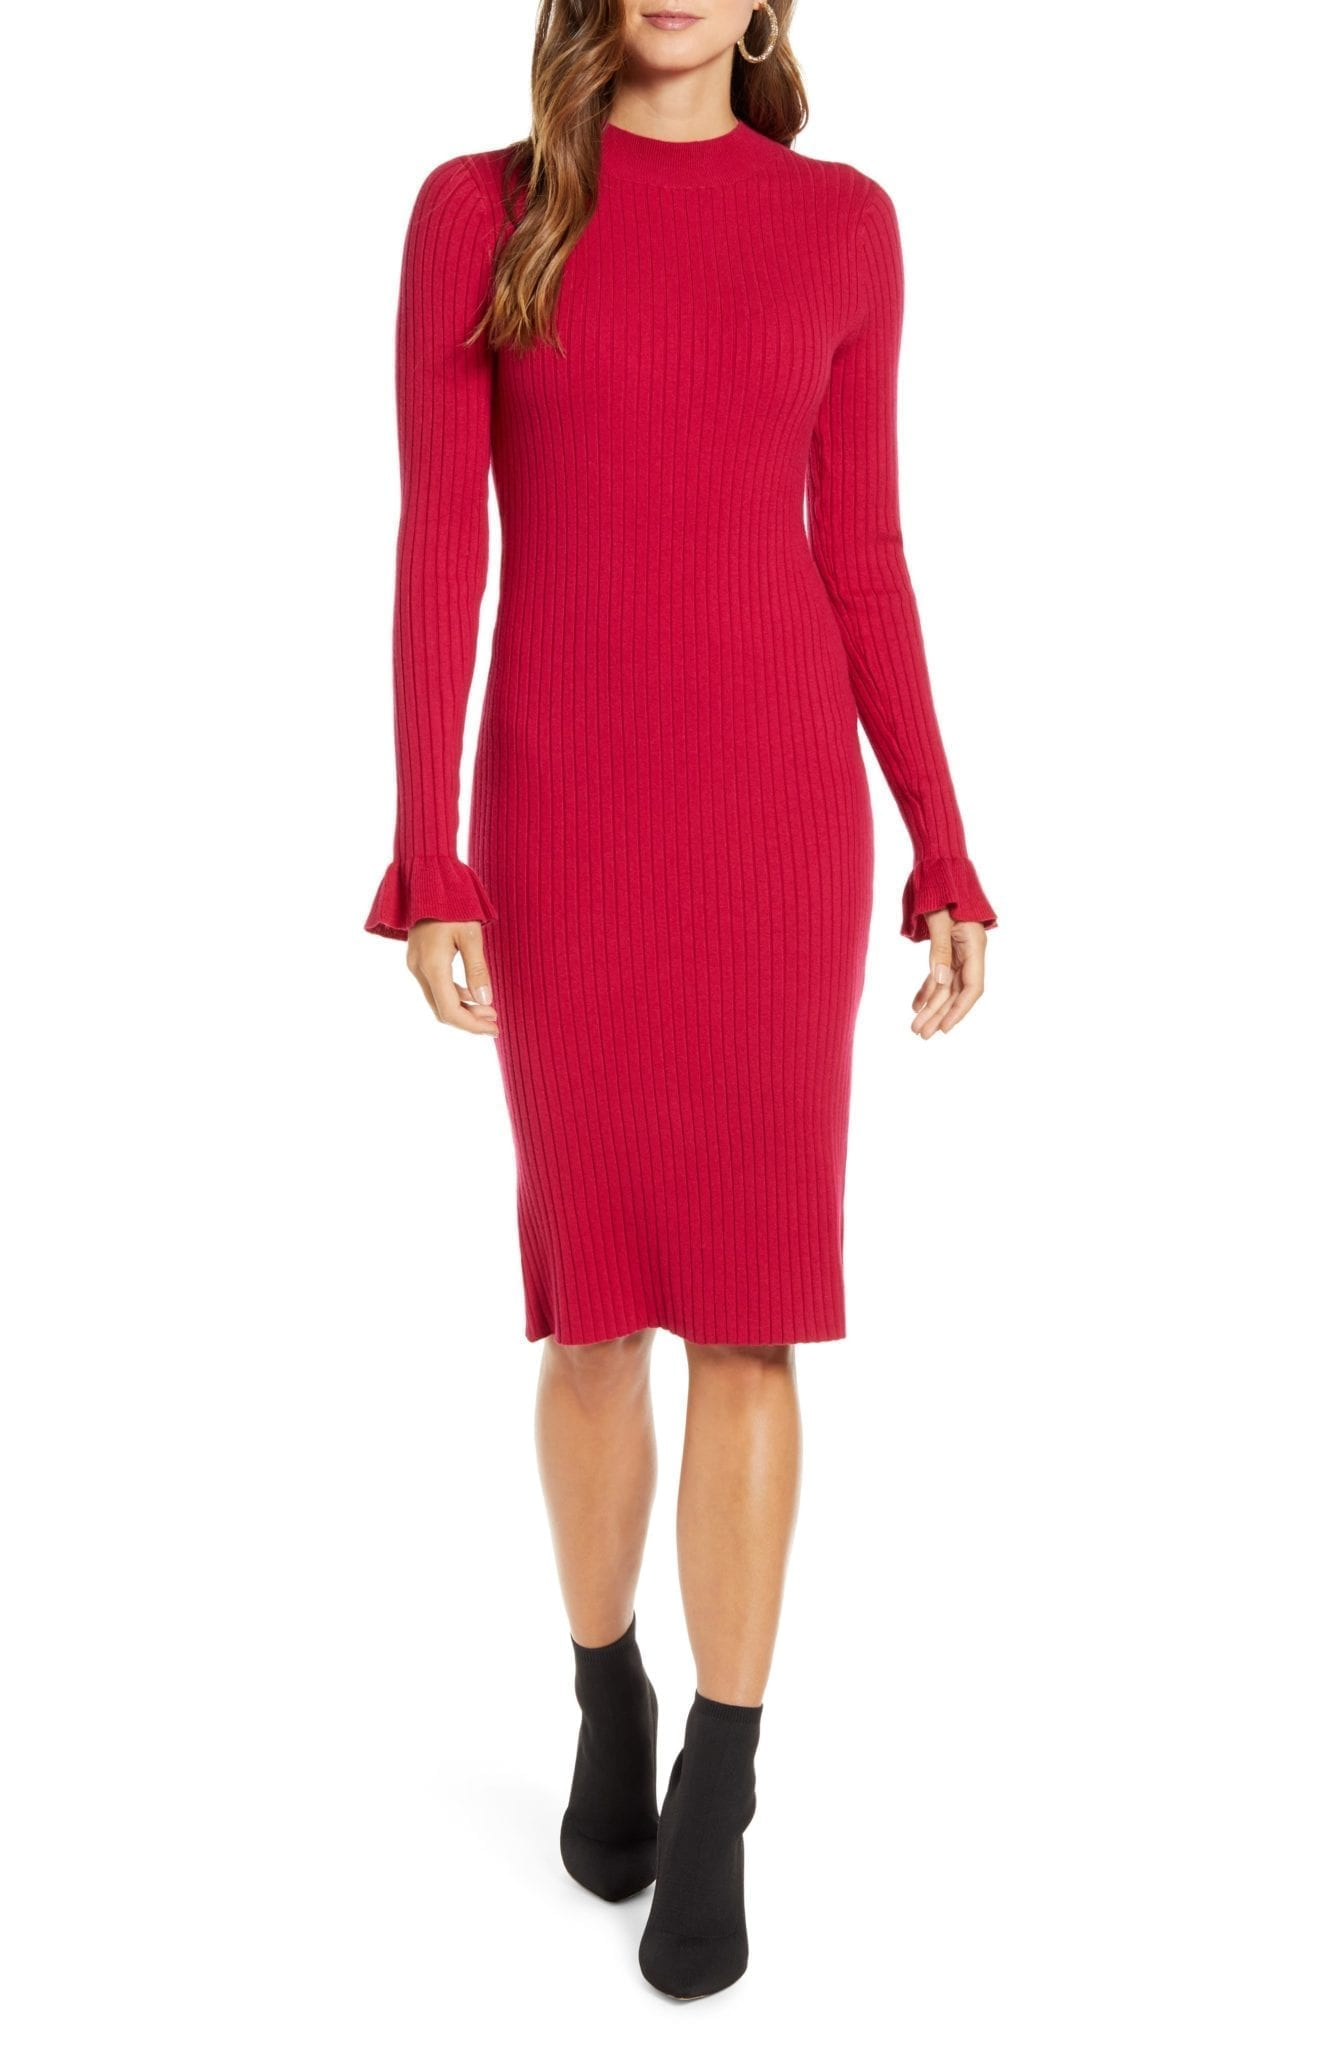 RACHEL PARCELL Rib Sweater Dress